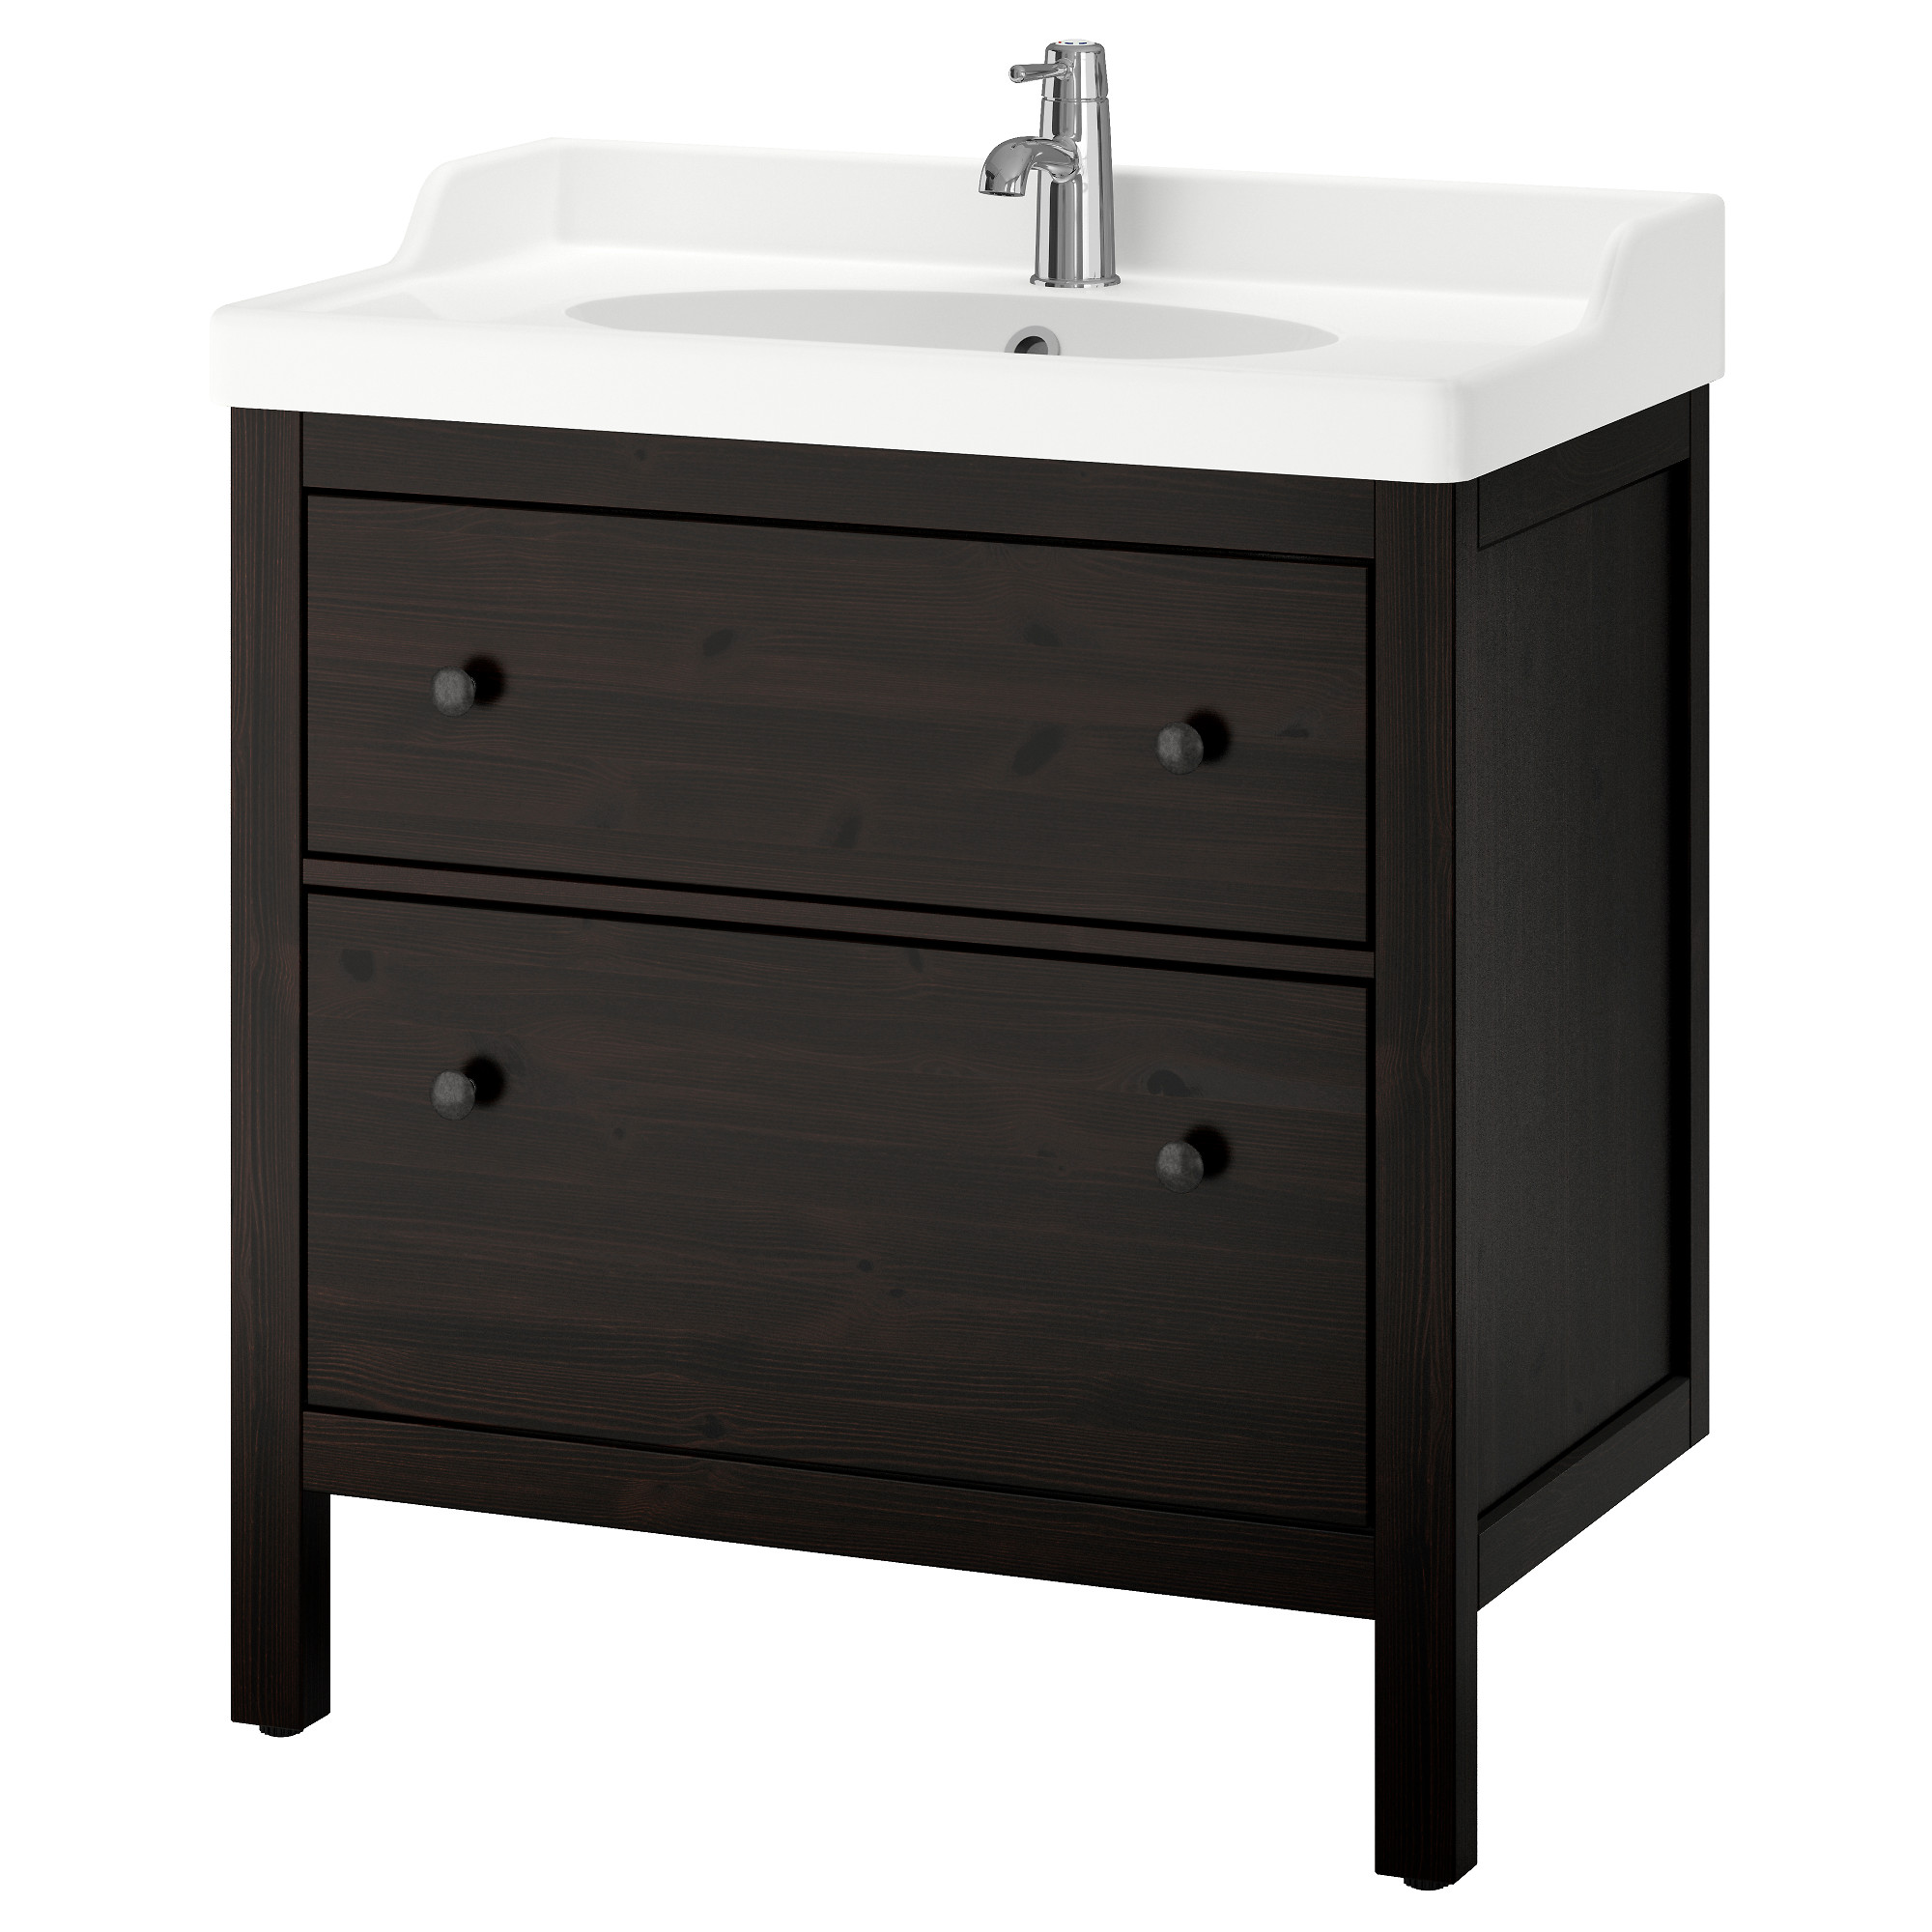 bathroom sink cabinets cheap. bathroom sink cabinets cheap l